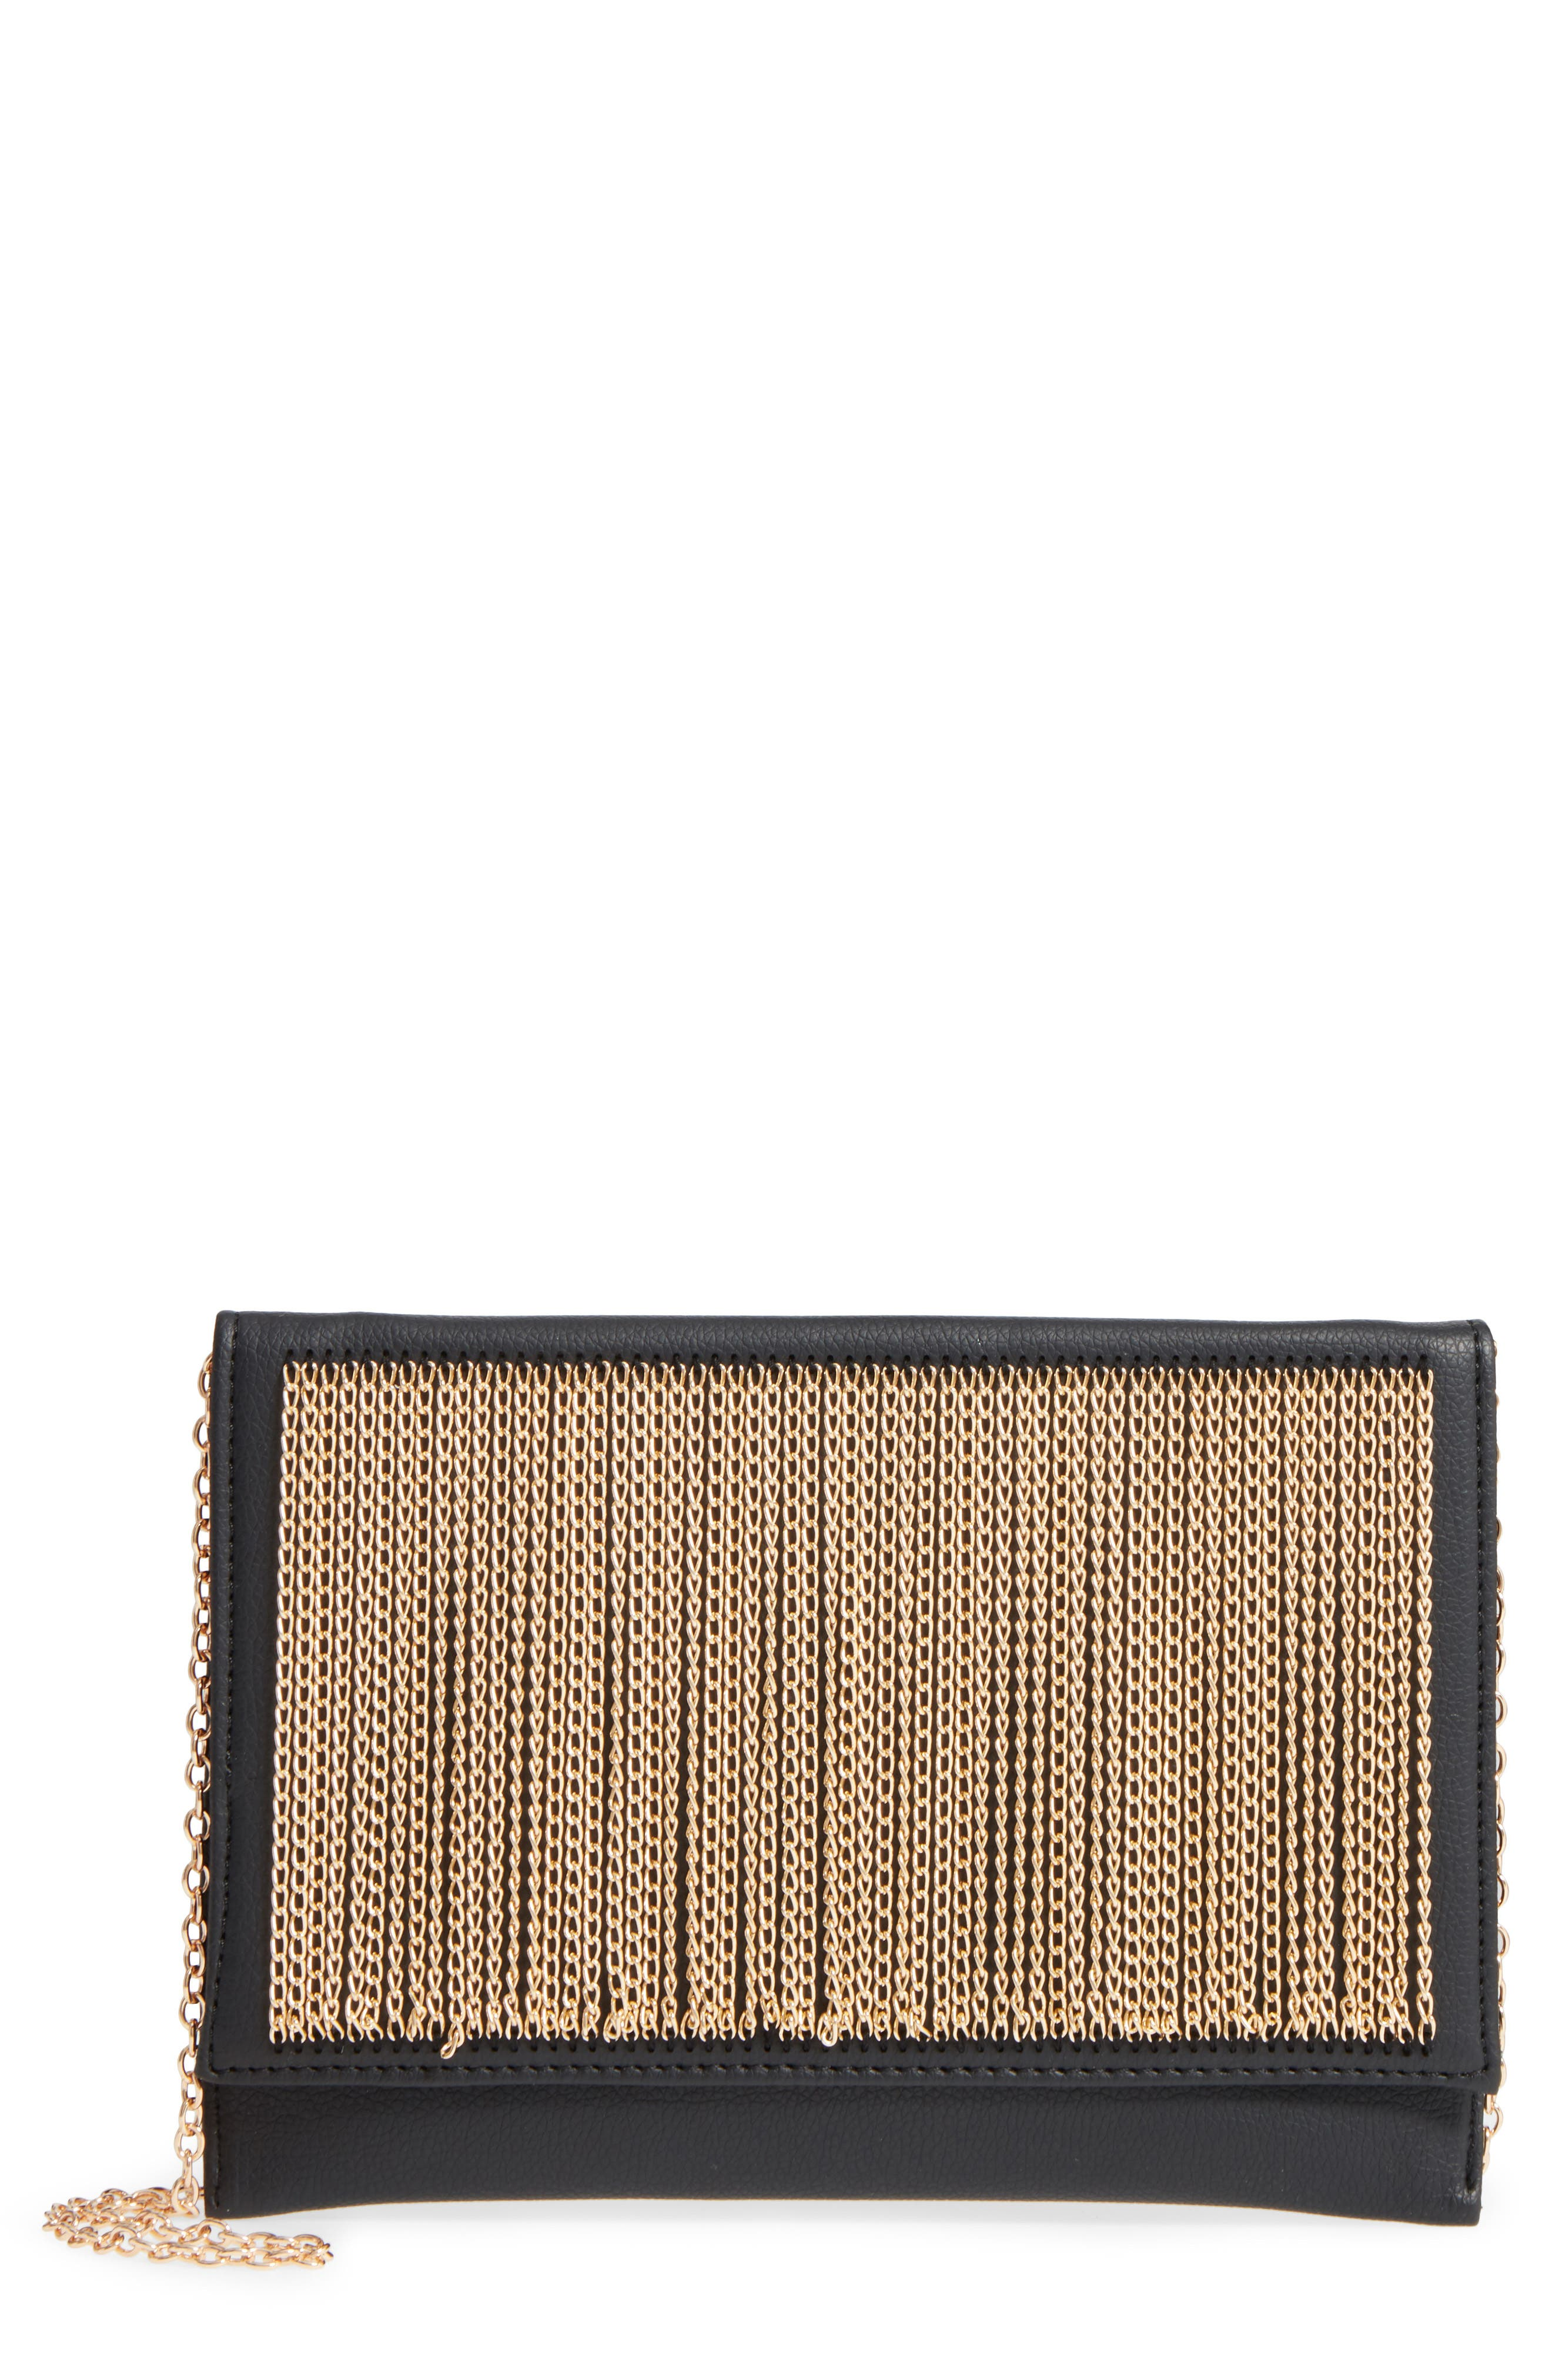 NATASHA COUTURE Natasha Chain Clutch, Main, color, 001